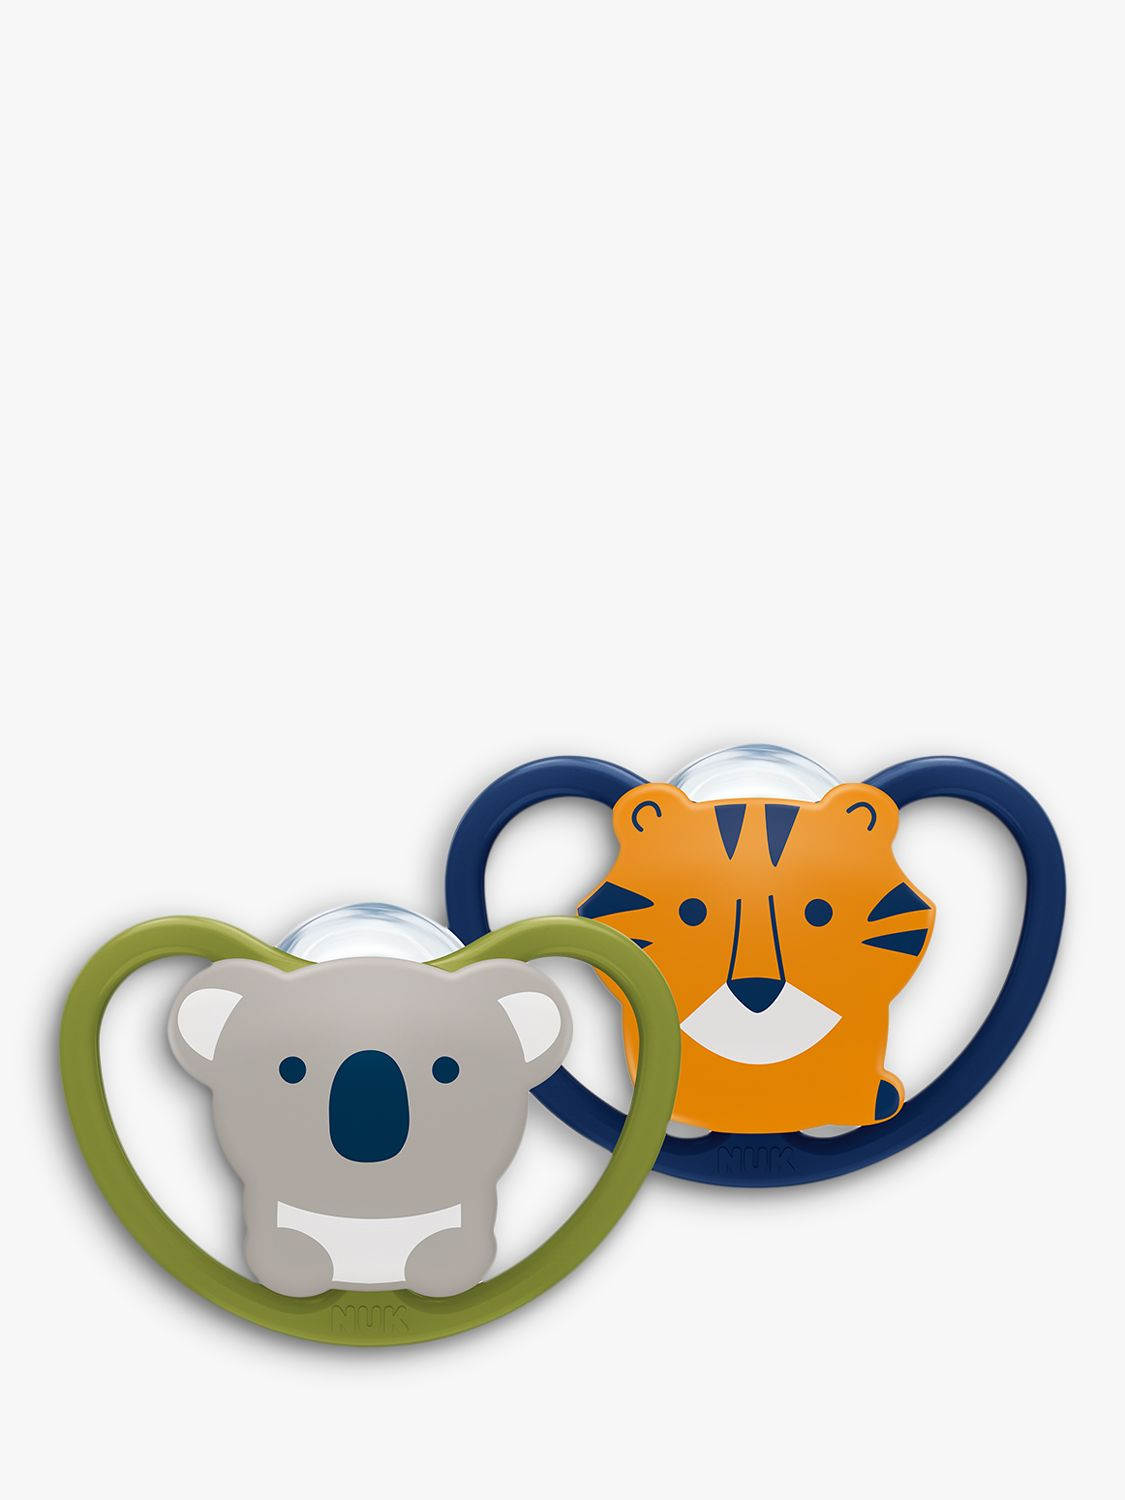 NUK NUK Size 2 Koala and Tiger Silicone Soother, 6-18 months, Pack of 2